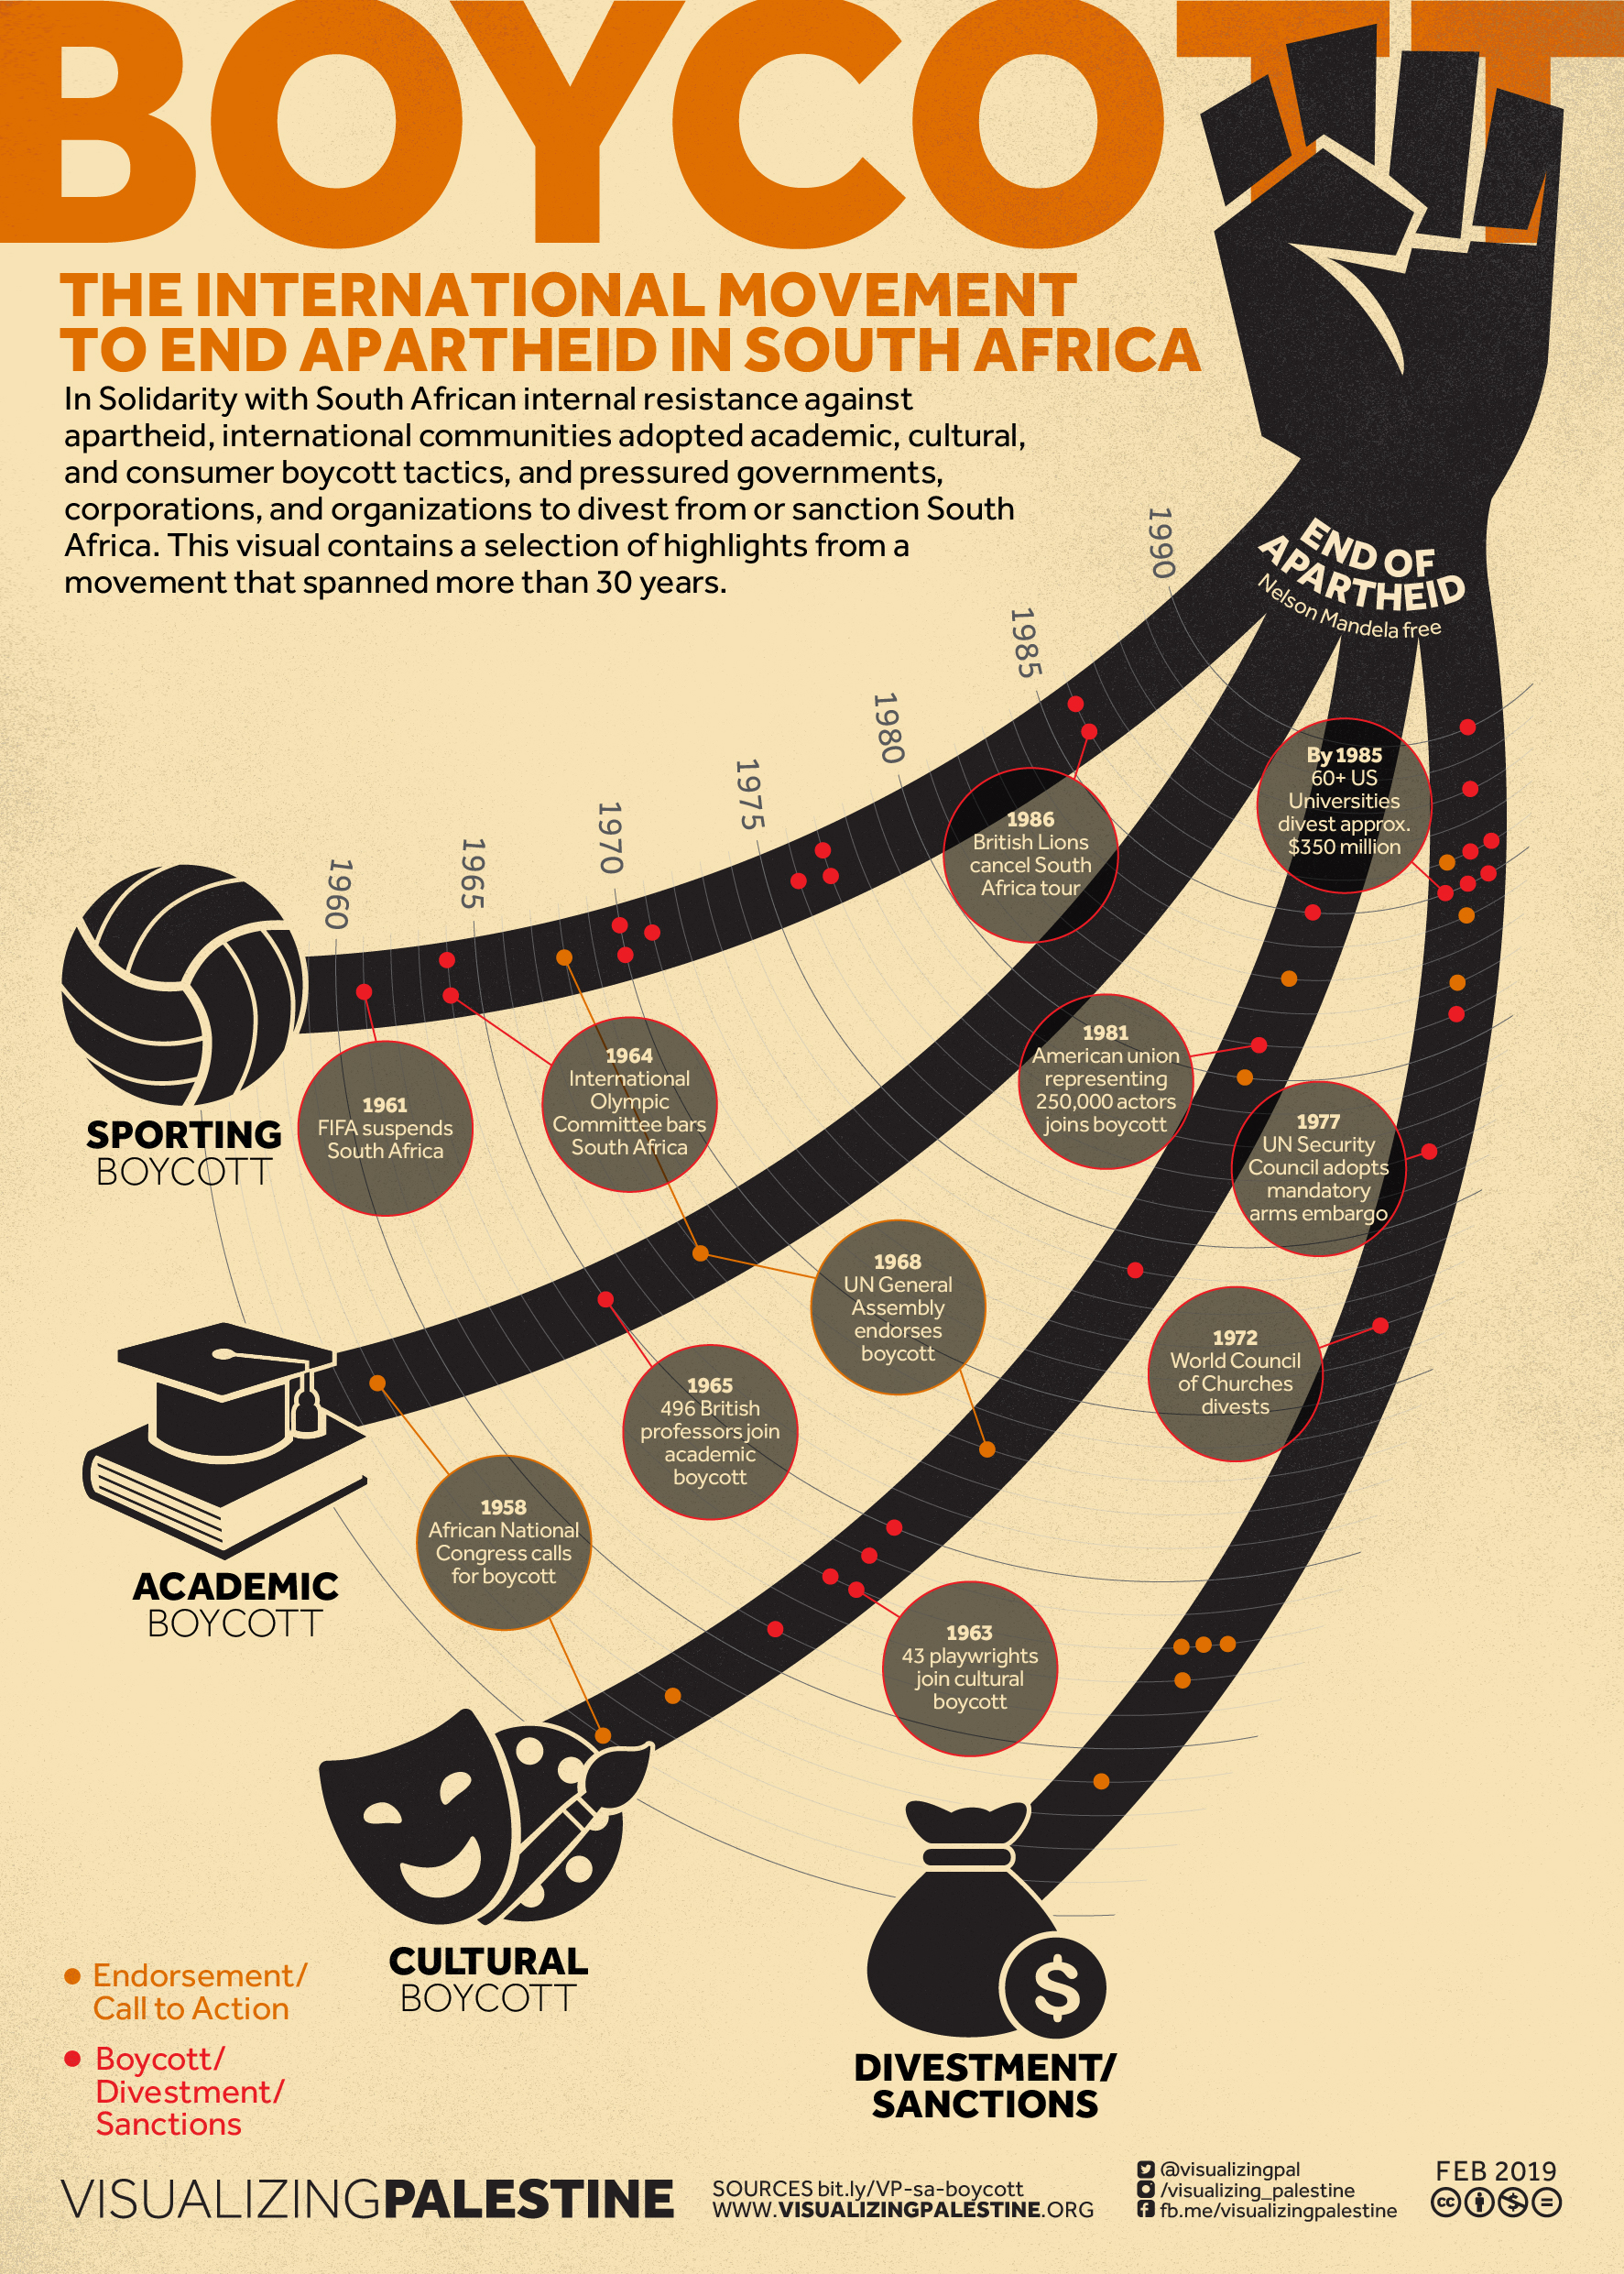 Boycott: The International Movement to End Apartheid in South Africa